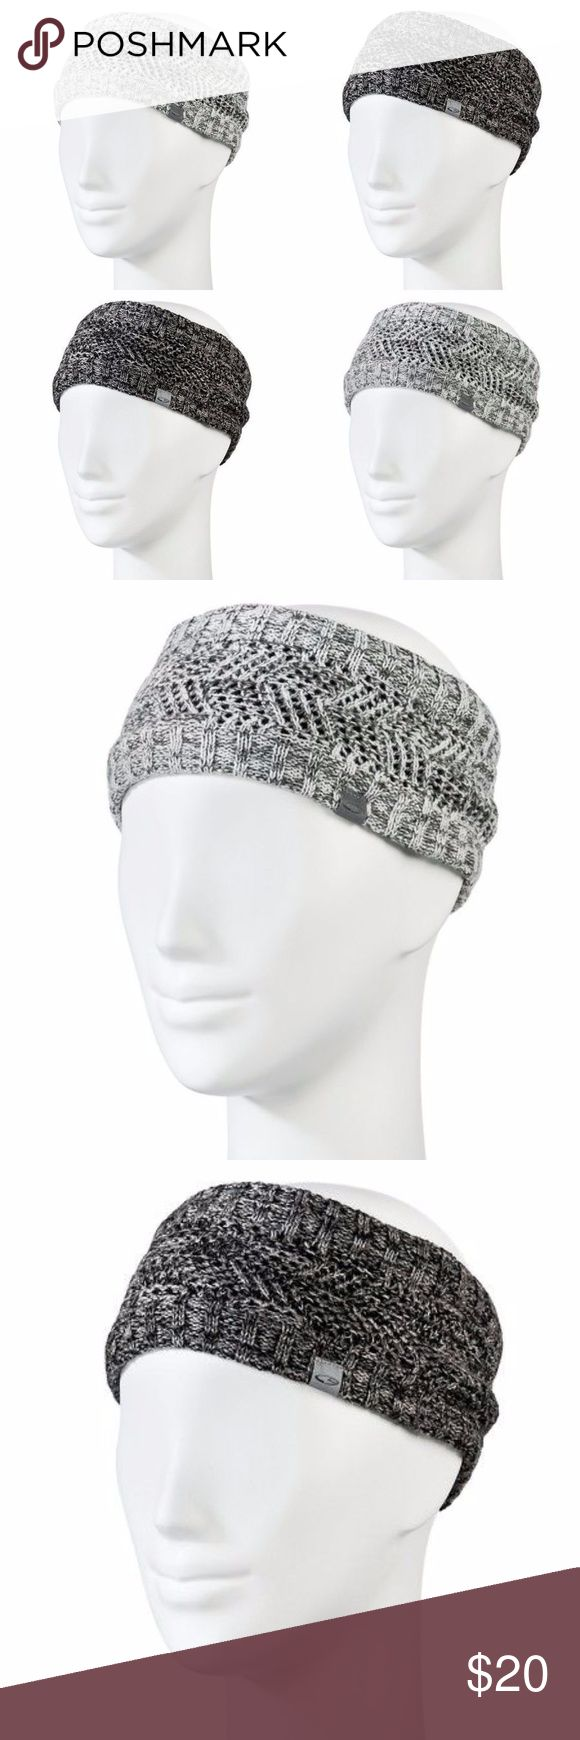 """BUNDLE 2 New CHAMPION Knit Headbands NWT Gray/Gray Bundle of 2   1 light gray & 1 dark gray  - marled knit - fleece lined - 4"""" wide - venture warm: performance fabric provides warmth without weight - reflective  condition: new with tags @cjrose25  *more colors in my closet These make great gifts & stocking stuffers. Its never to early to buy for xmas.  running - winter - fall - head warmer - earmuffs - sweater - snow bunny Champion Accessories Hair Accessories"""